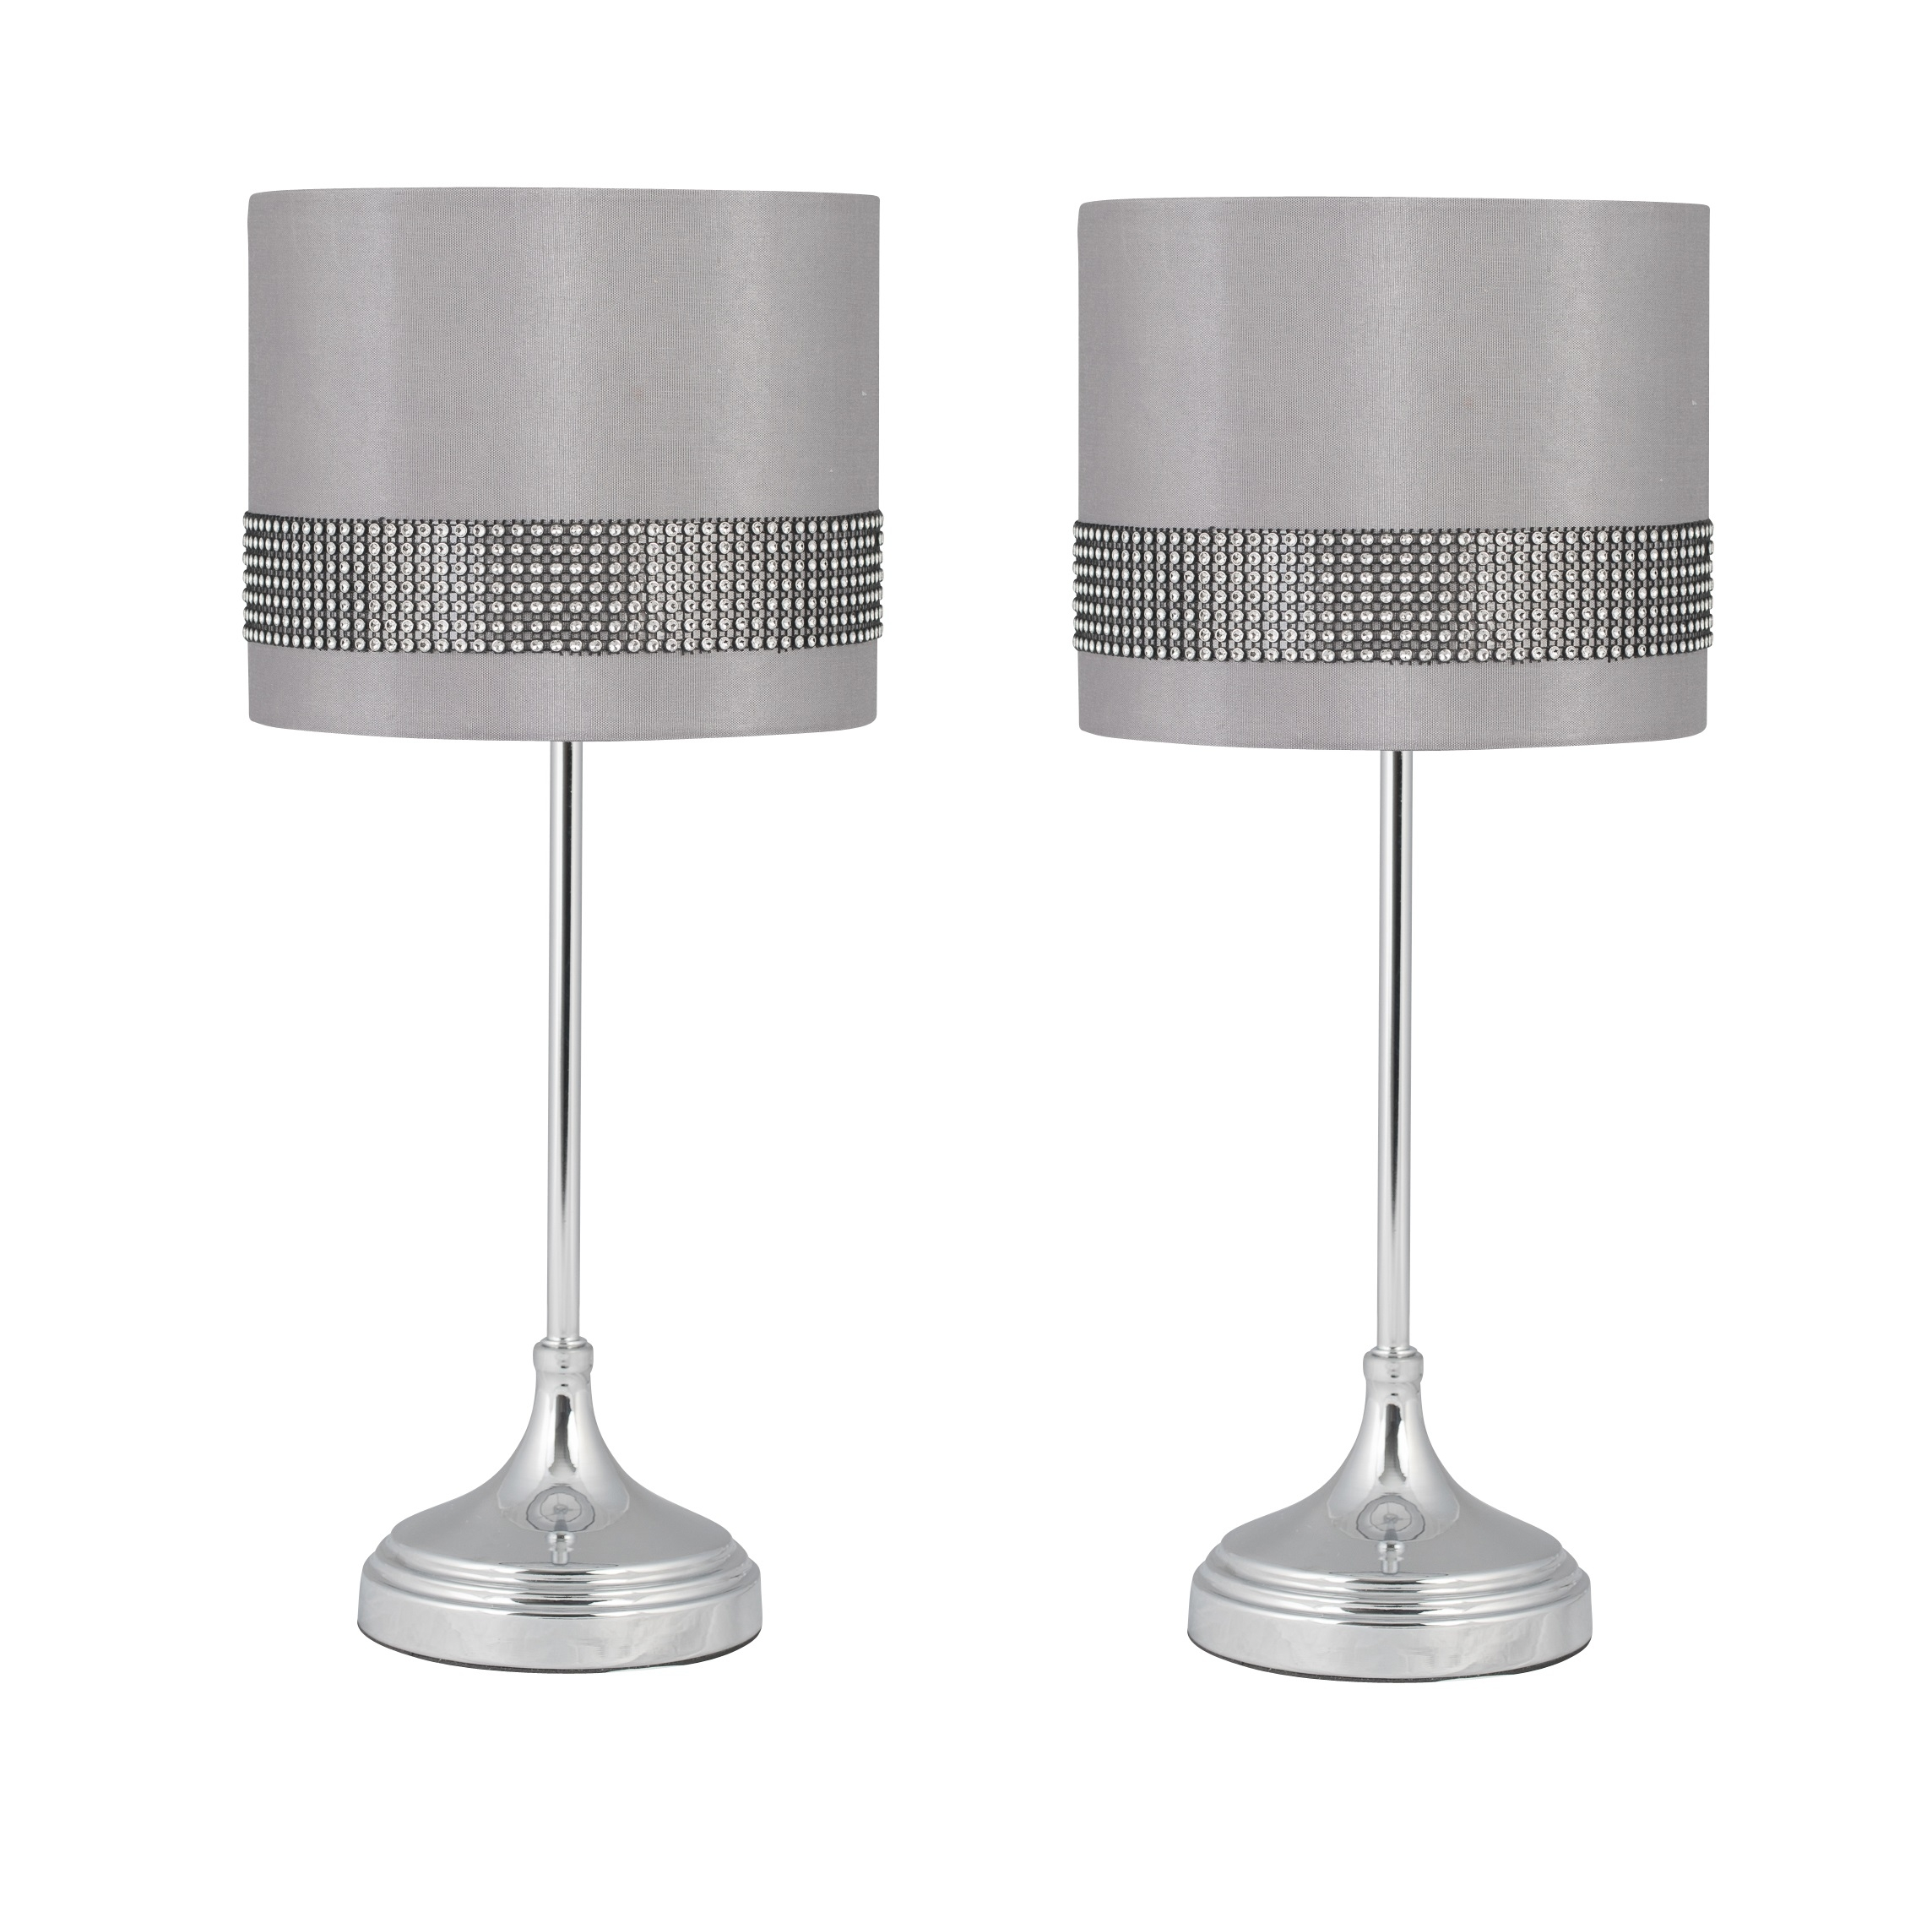 Modern Of Pair Alta Table Lamps Bedside Lights In Chrome W